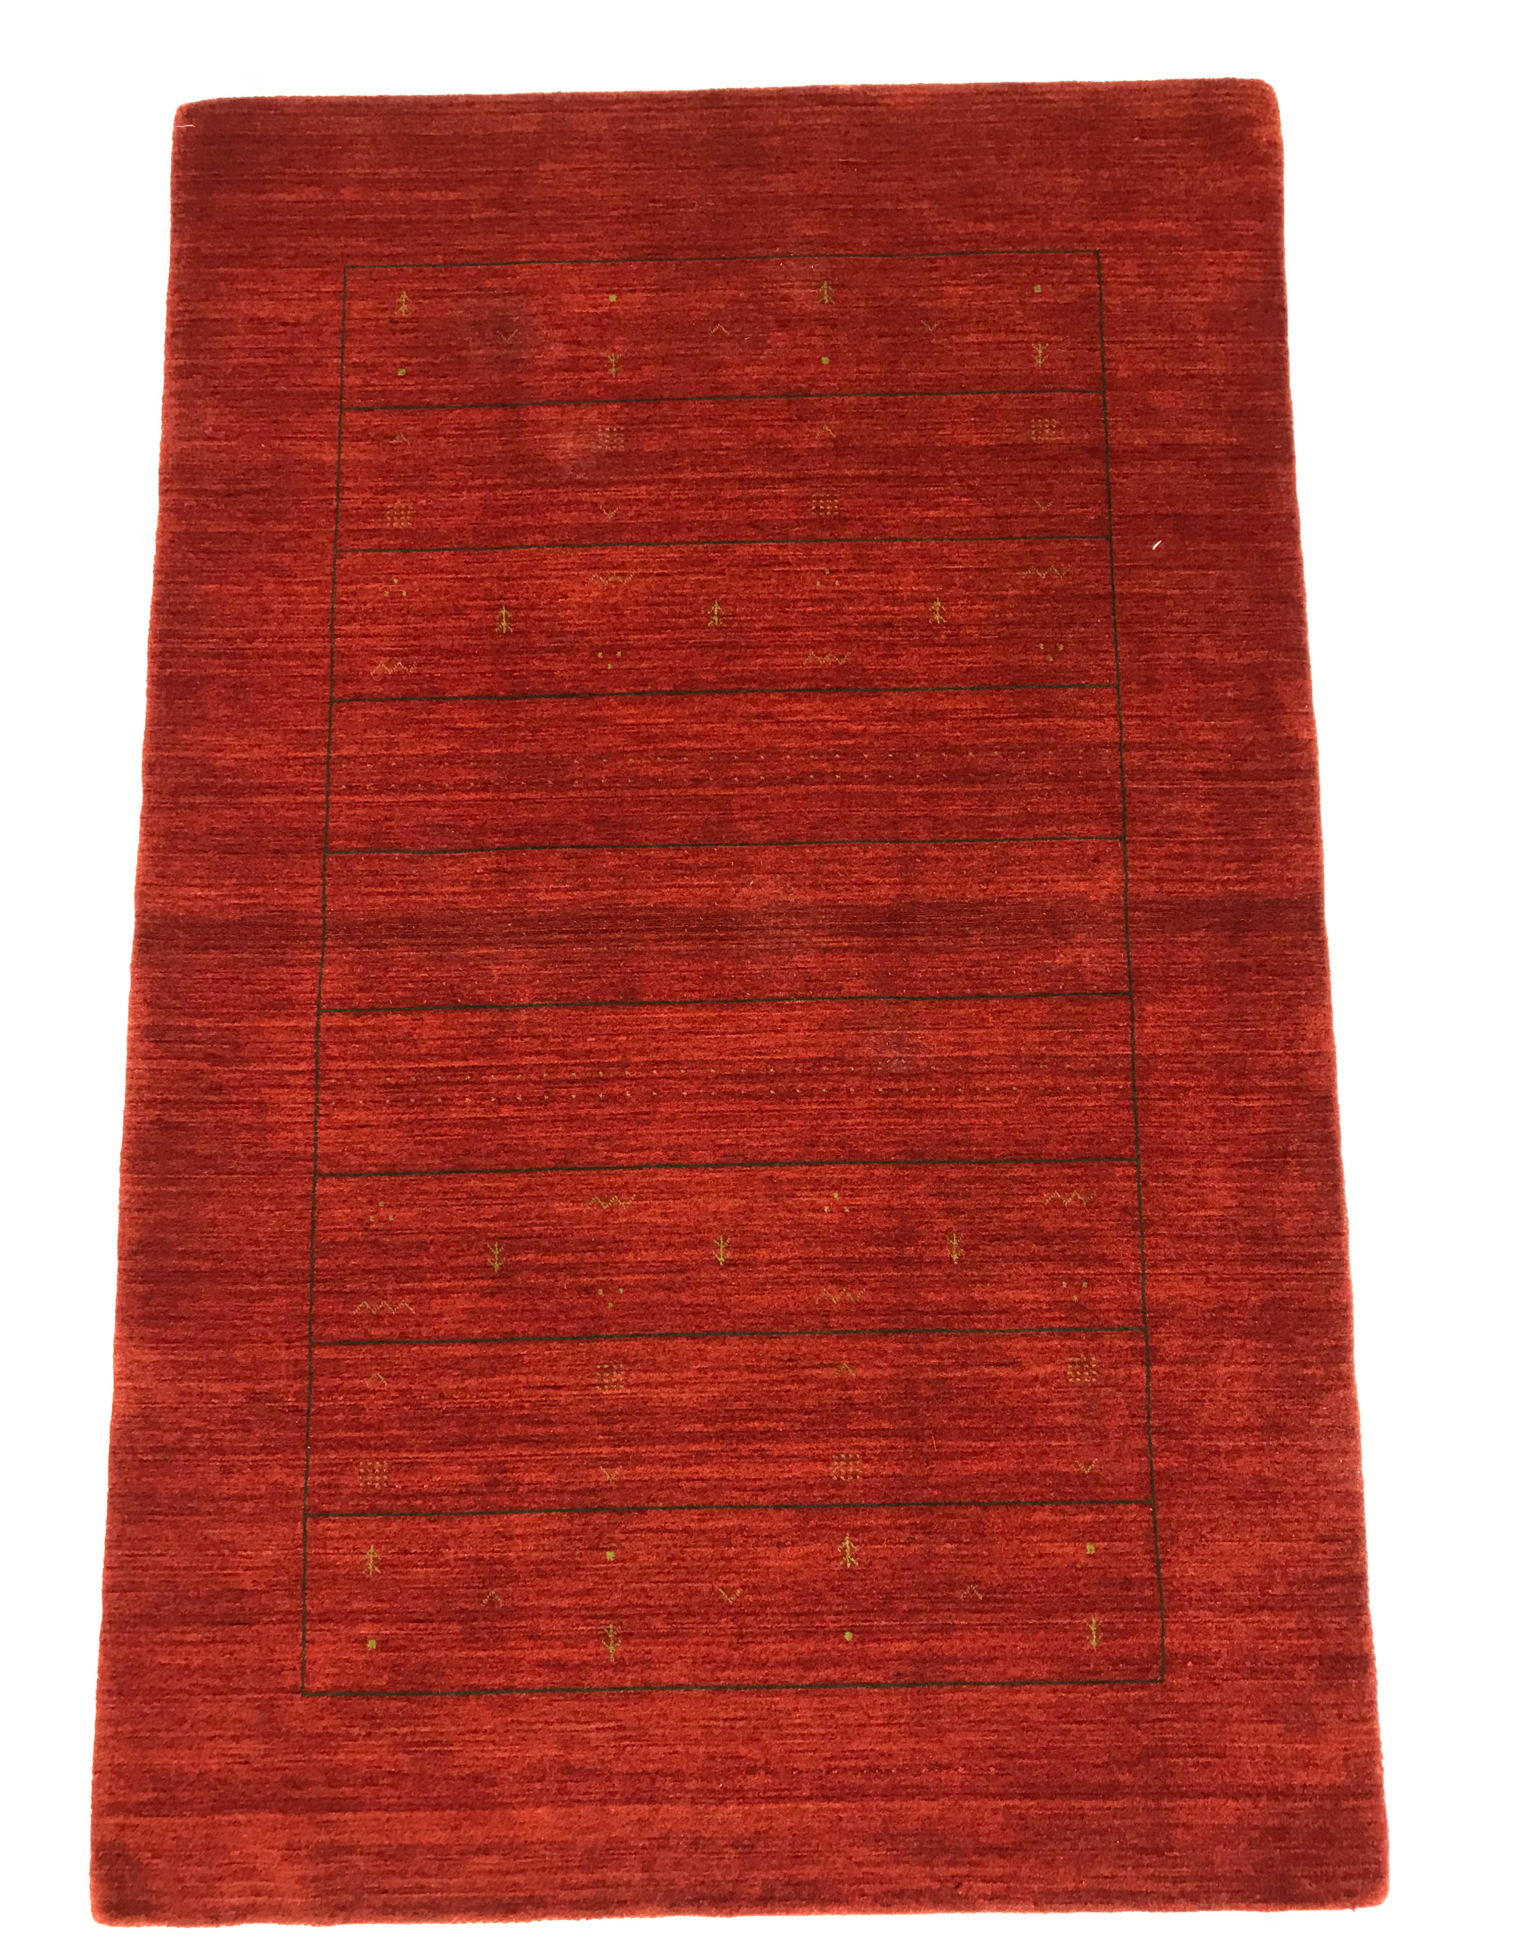 Mod 2027 100 Wool Pile Hand Knotted In Pakistan Red